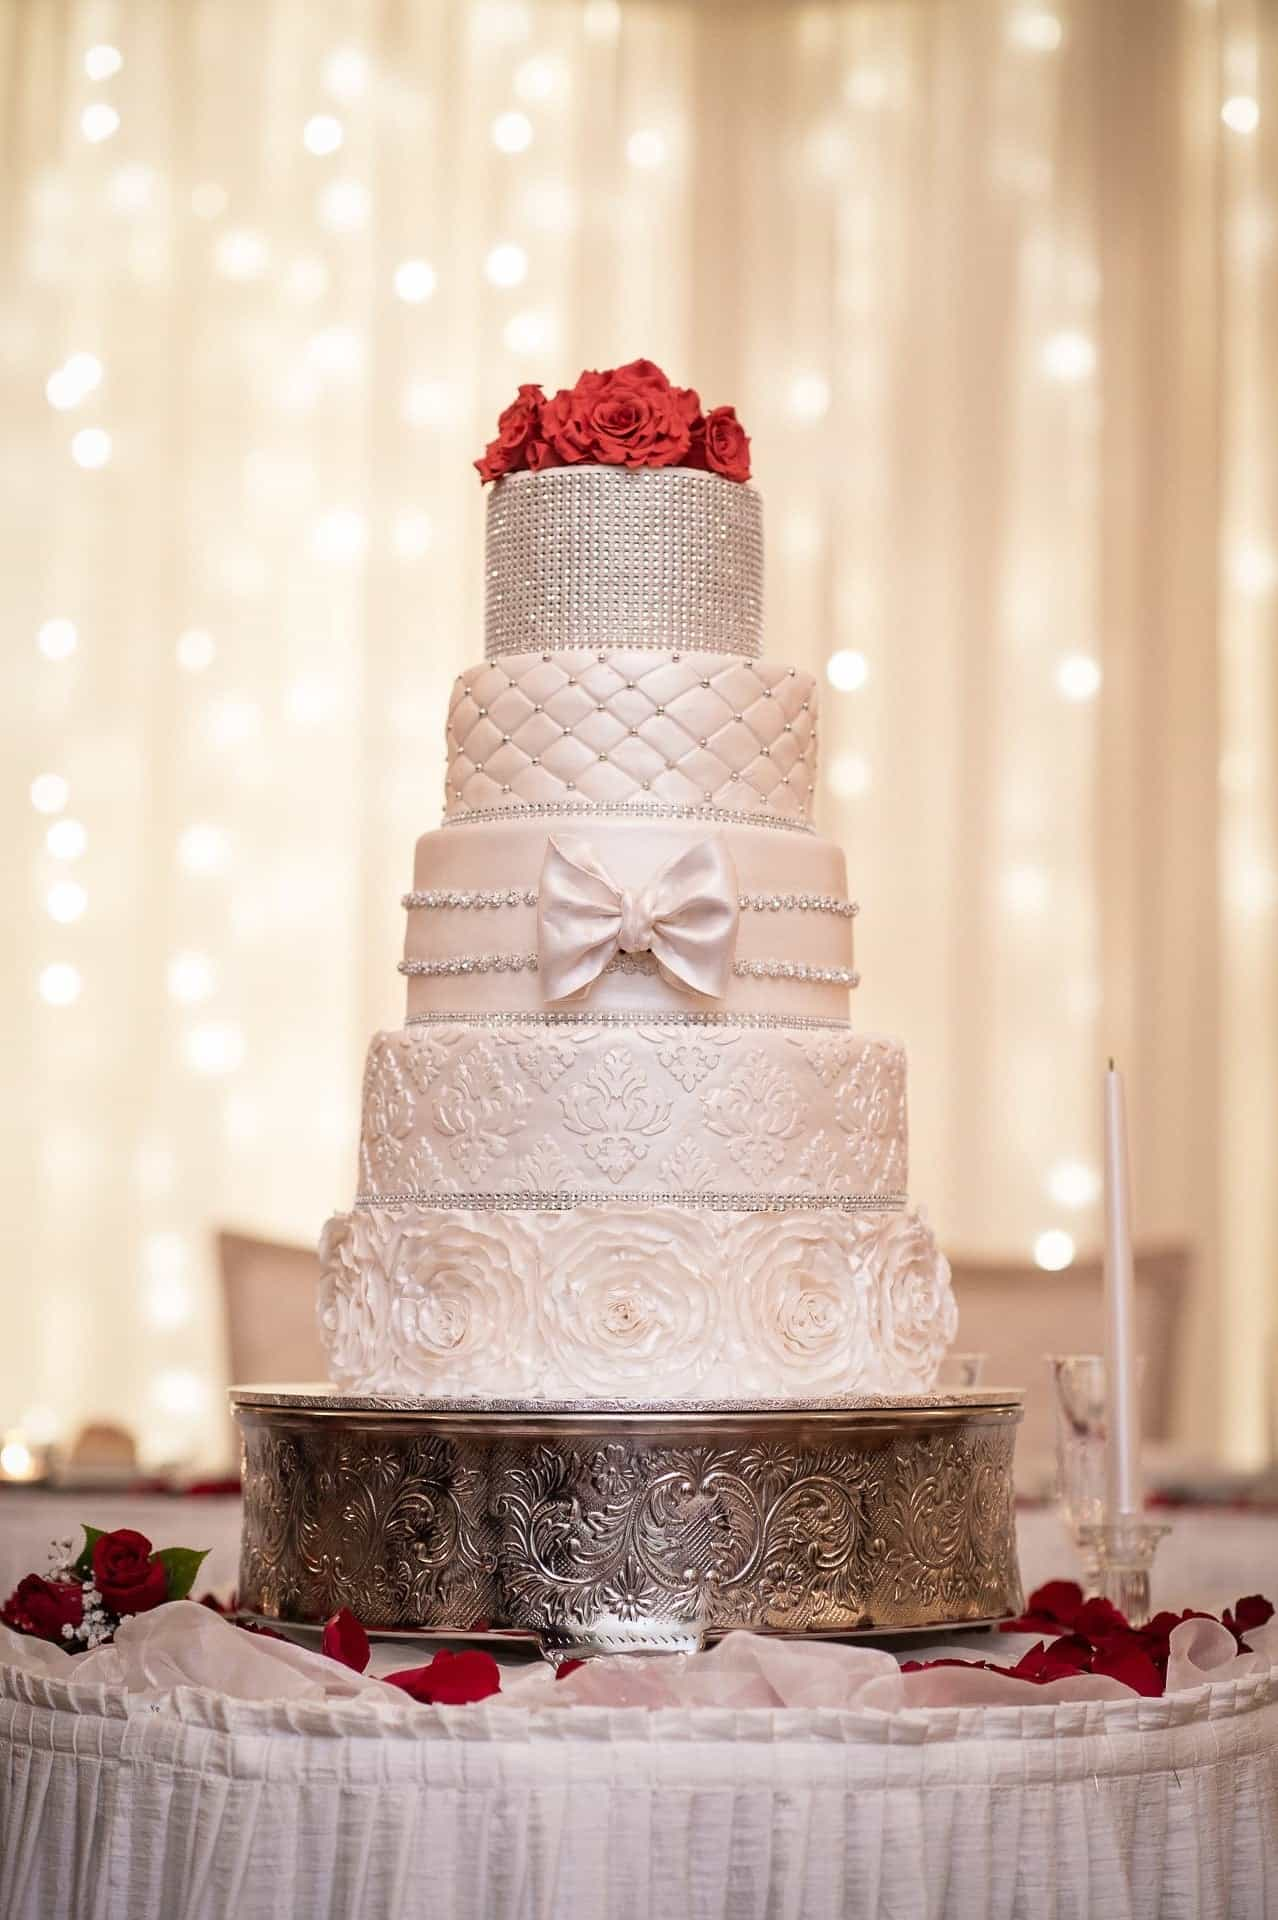 Classic Luxury Four Tiers Wedding Cake (Image 7 of 16)